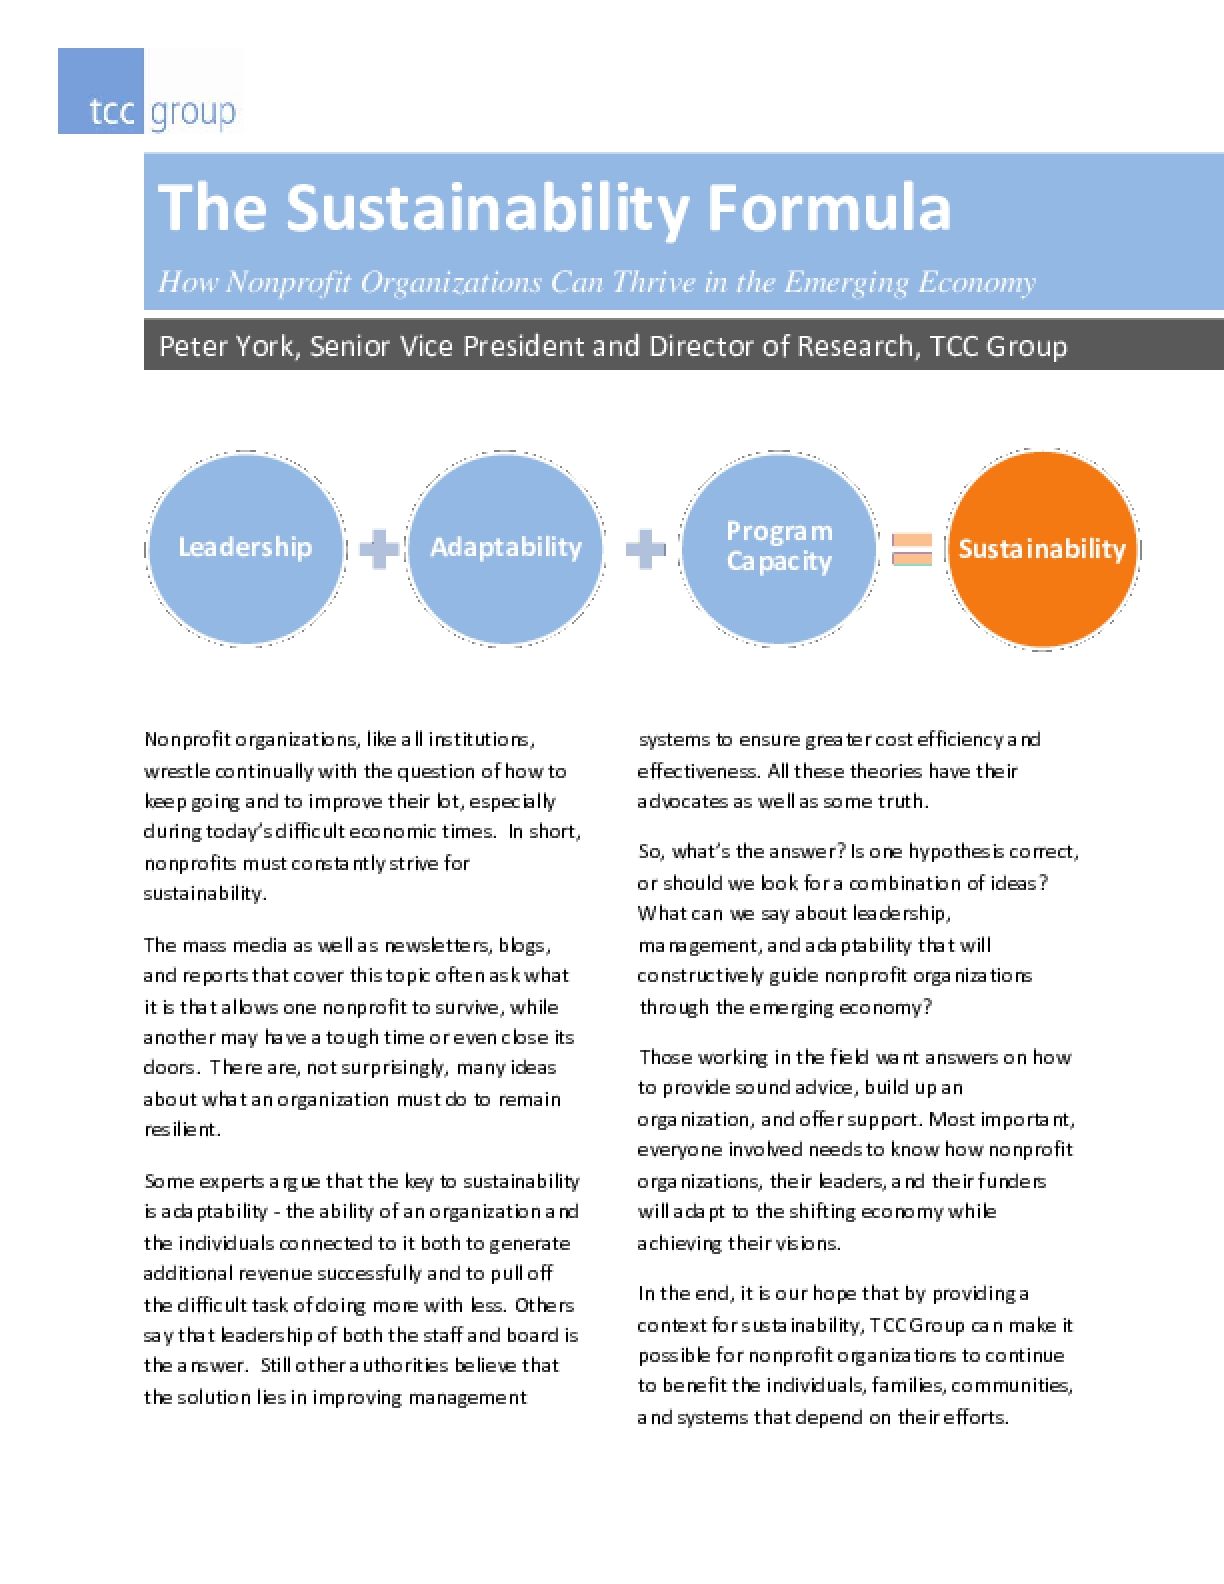 The Sustainability Formula: How Nonprofit Organizations Can Thrive in the Emerging Economy